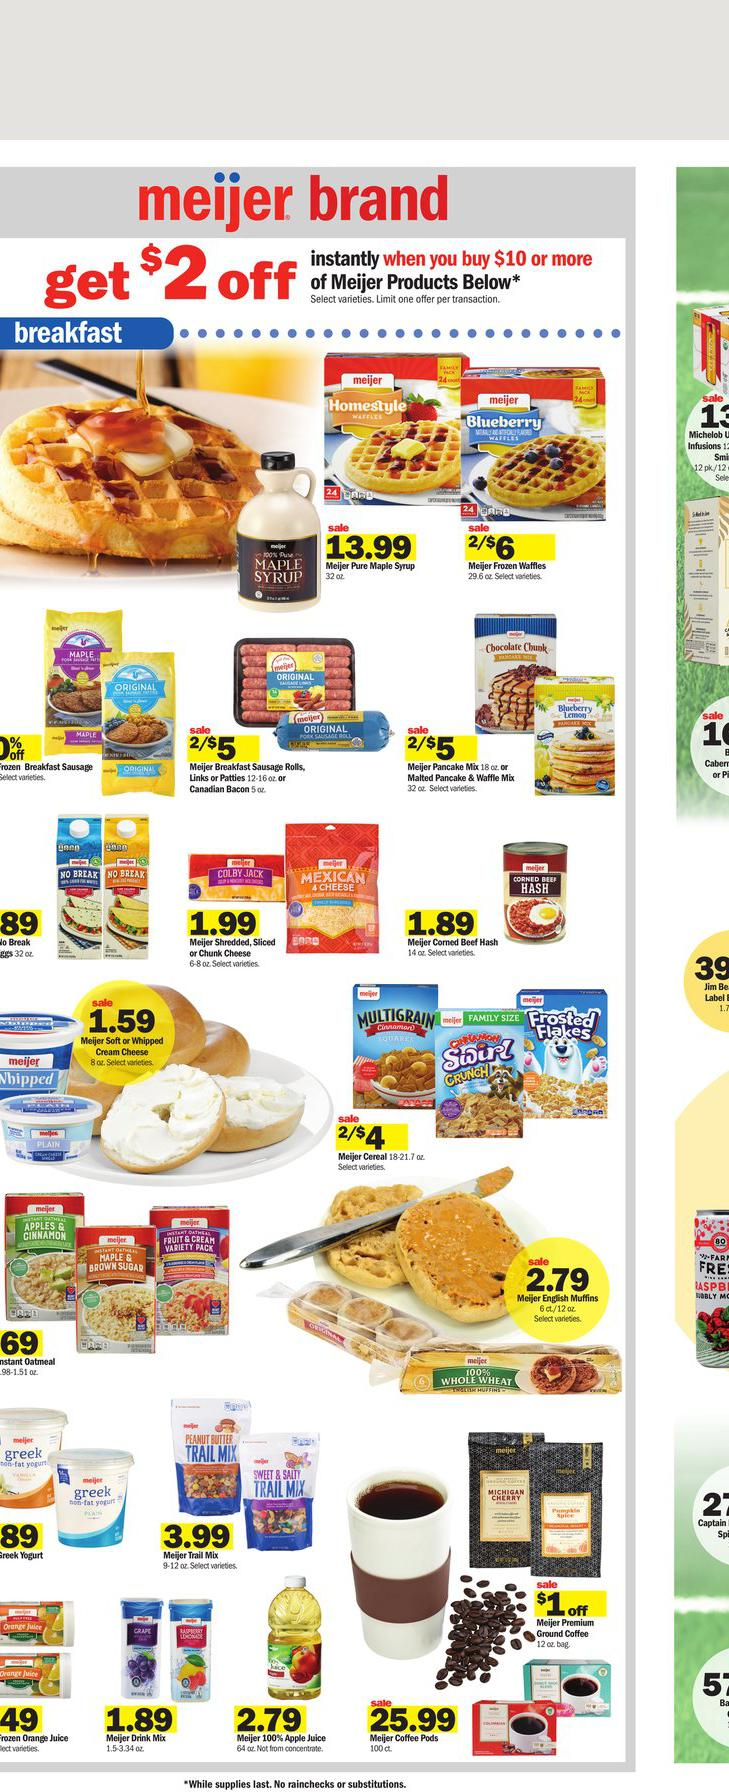 12.09.2021 Meijer ad 11. page